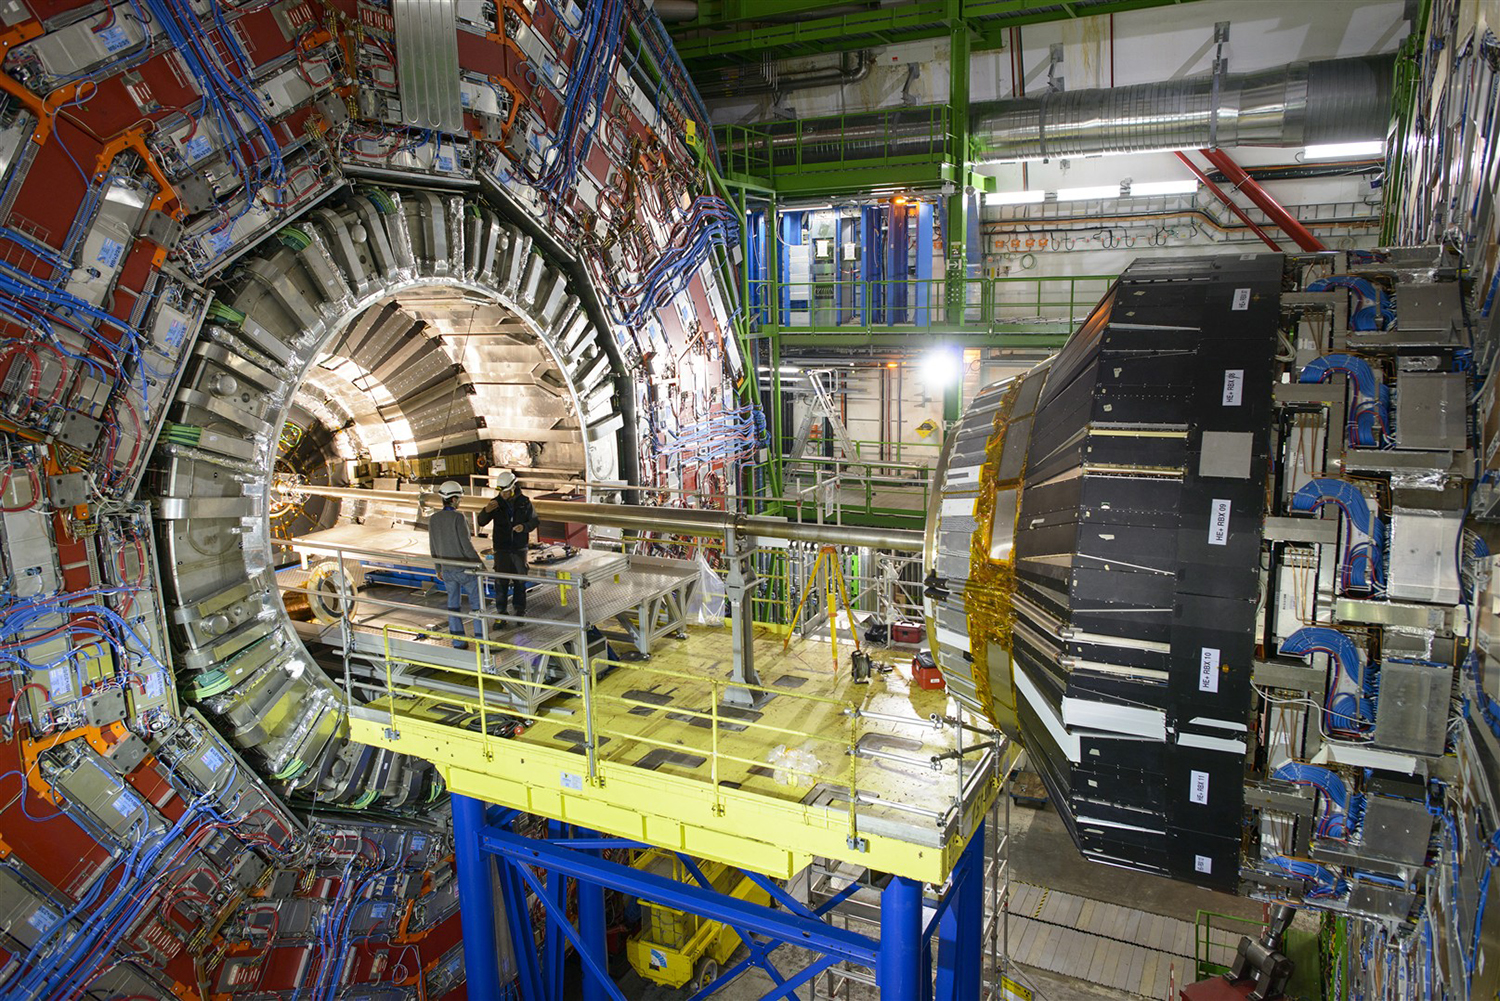 Large Hadron Collider: News, Theories, and Everything You ...